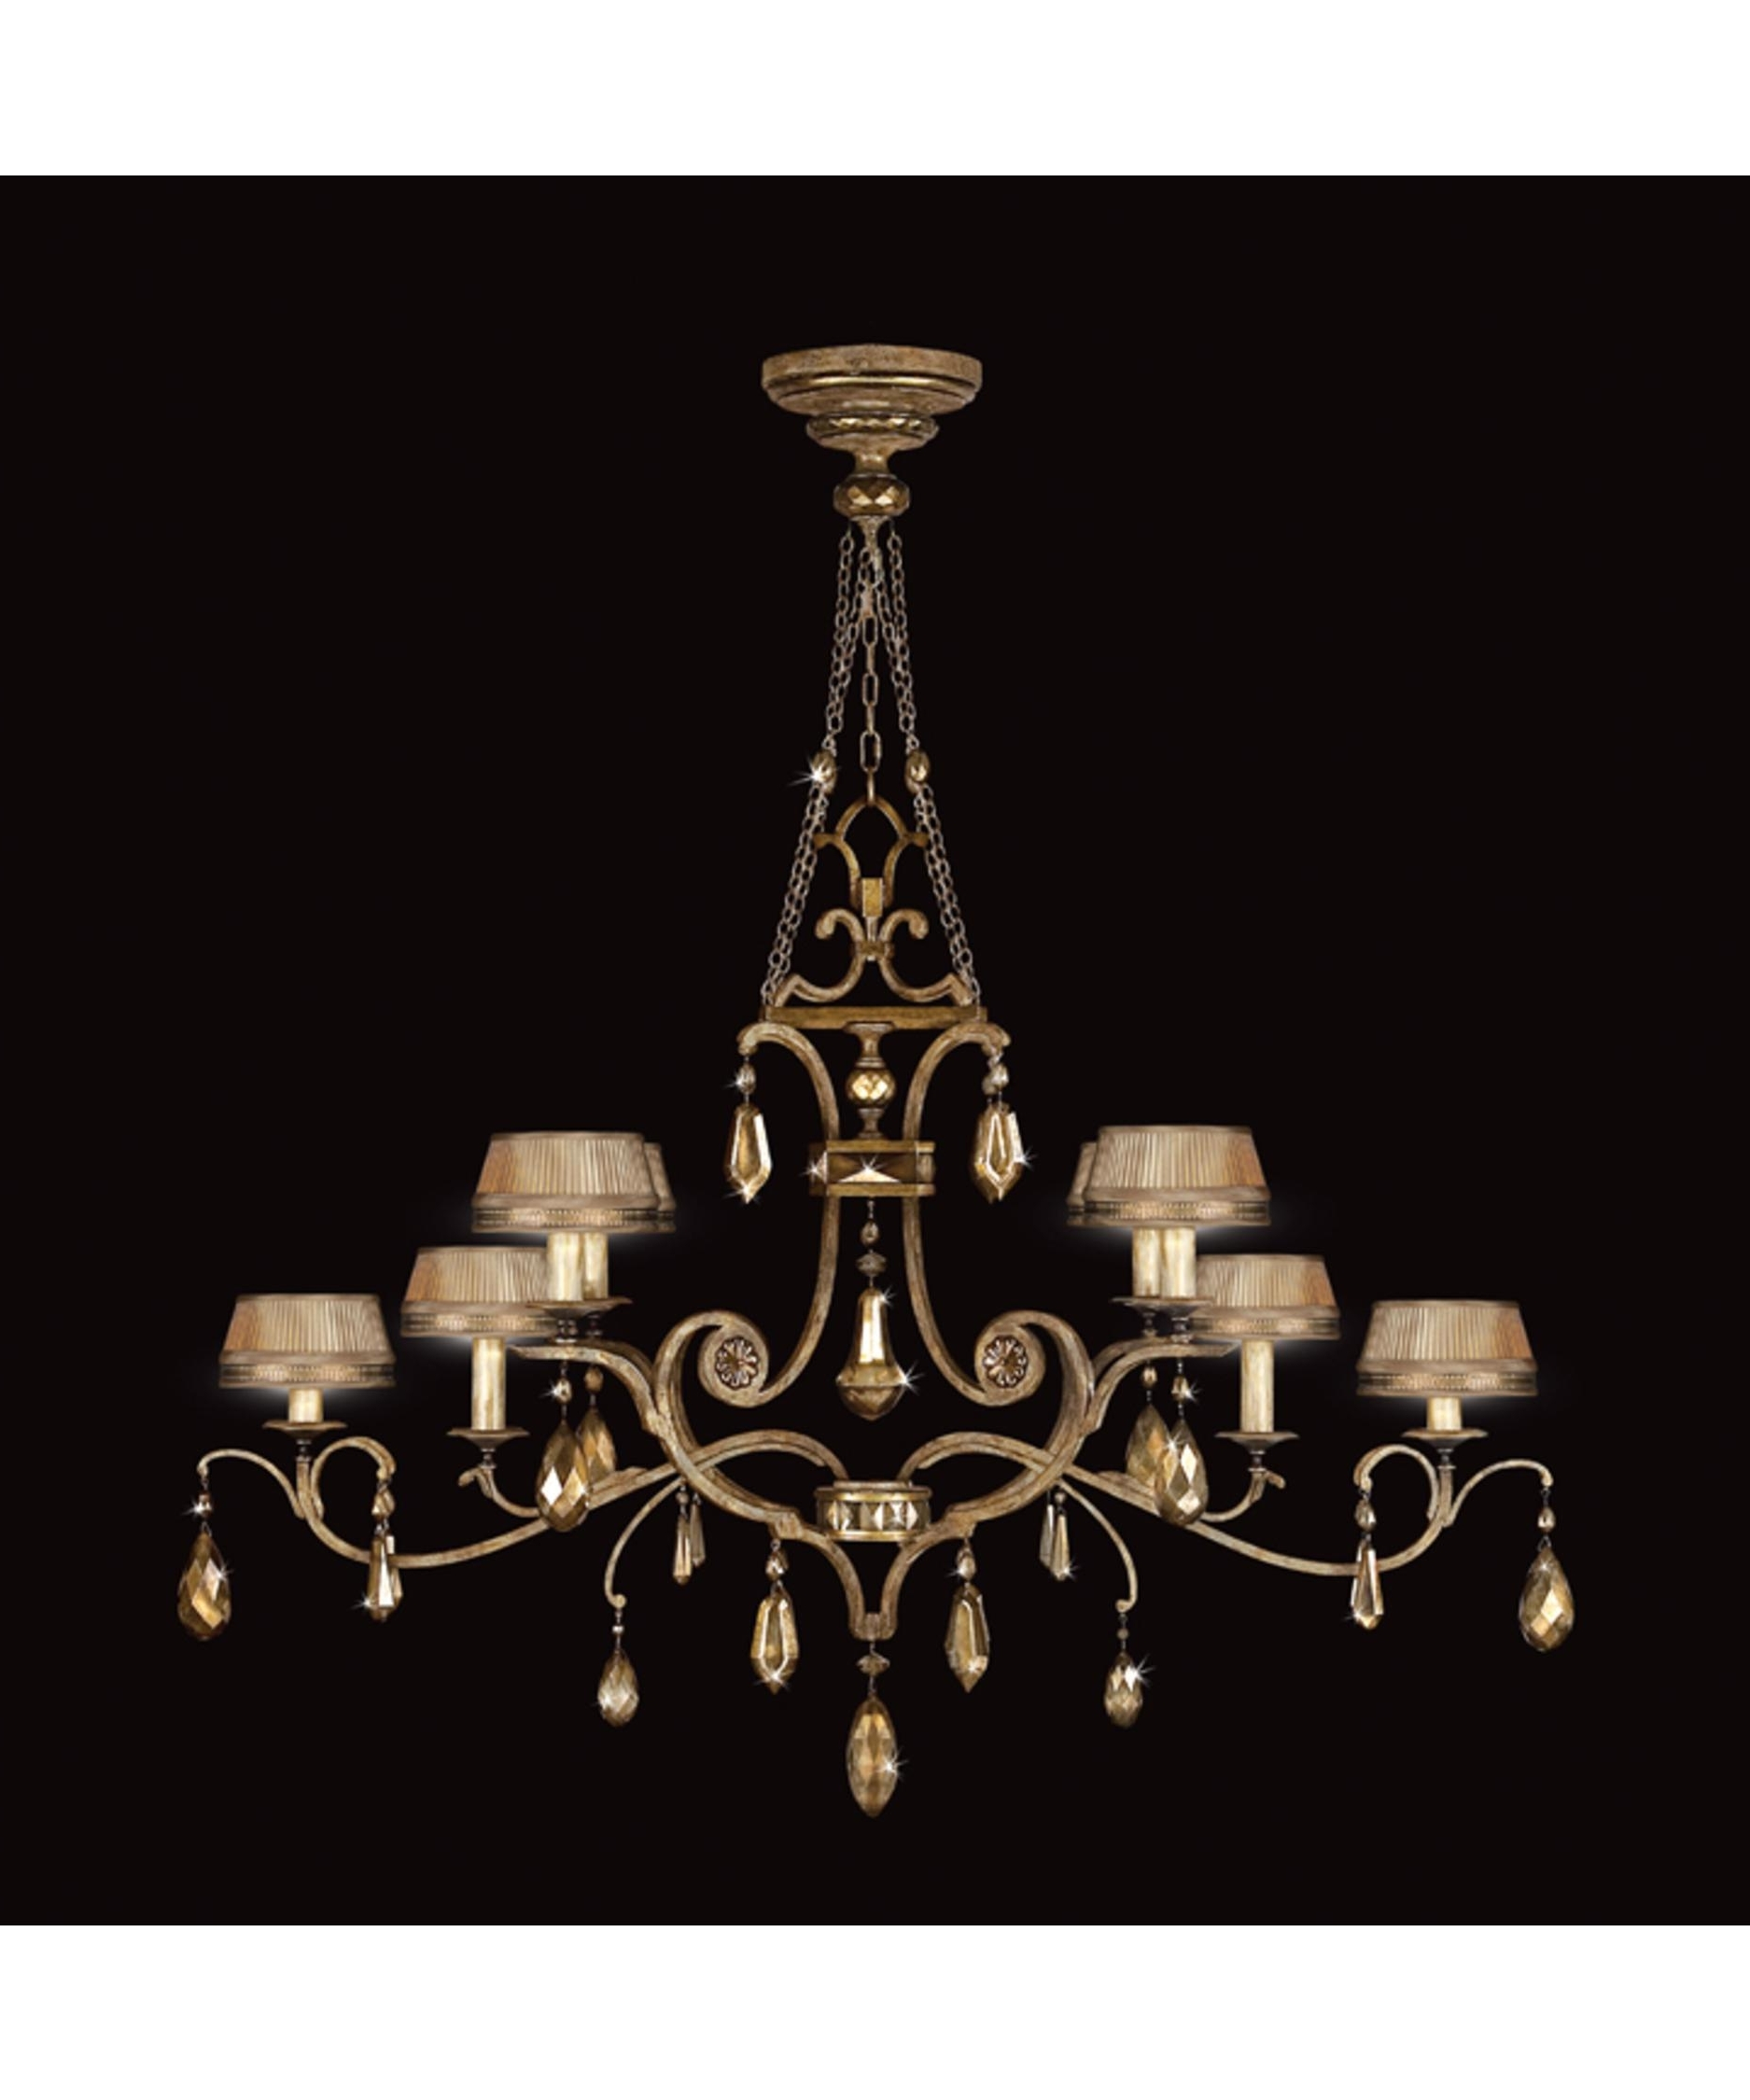 Fine Art Lamps 755440 Golden Aura 63 Inch Wide 8 Light Chandelier Pertaining To Well Liked Chandelier Wall Lights (View 11 of 20)